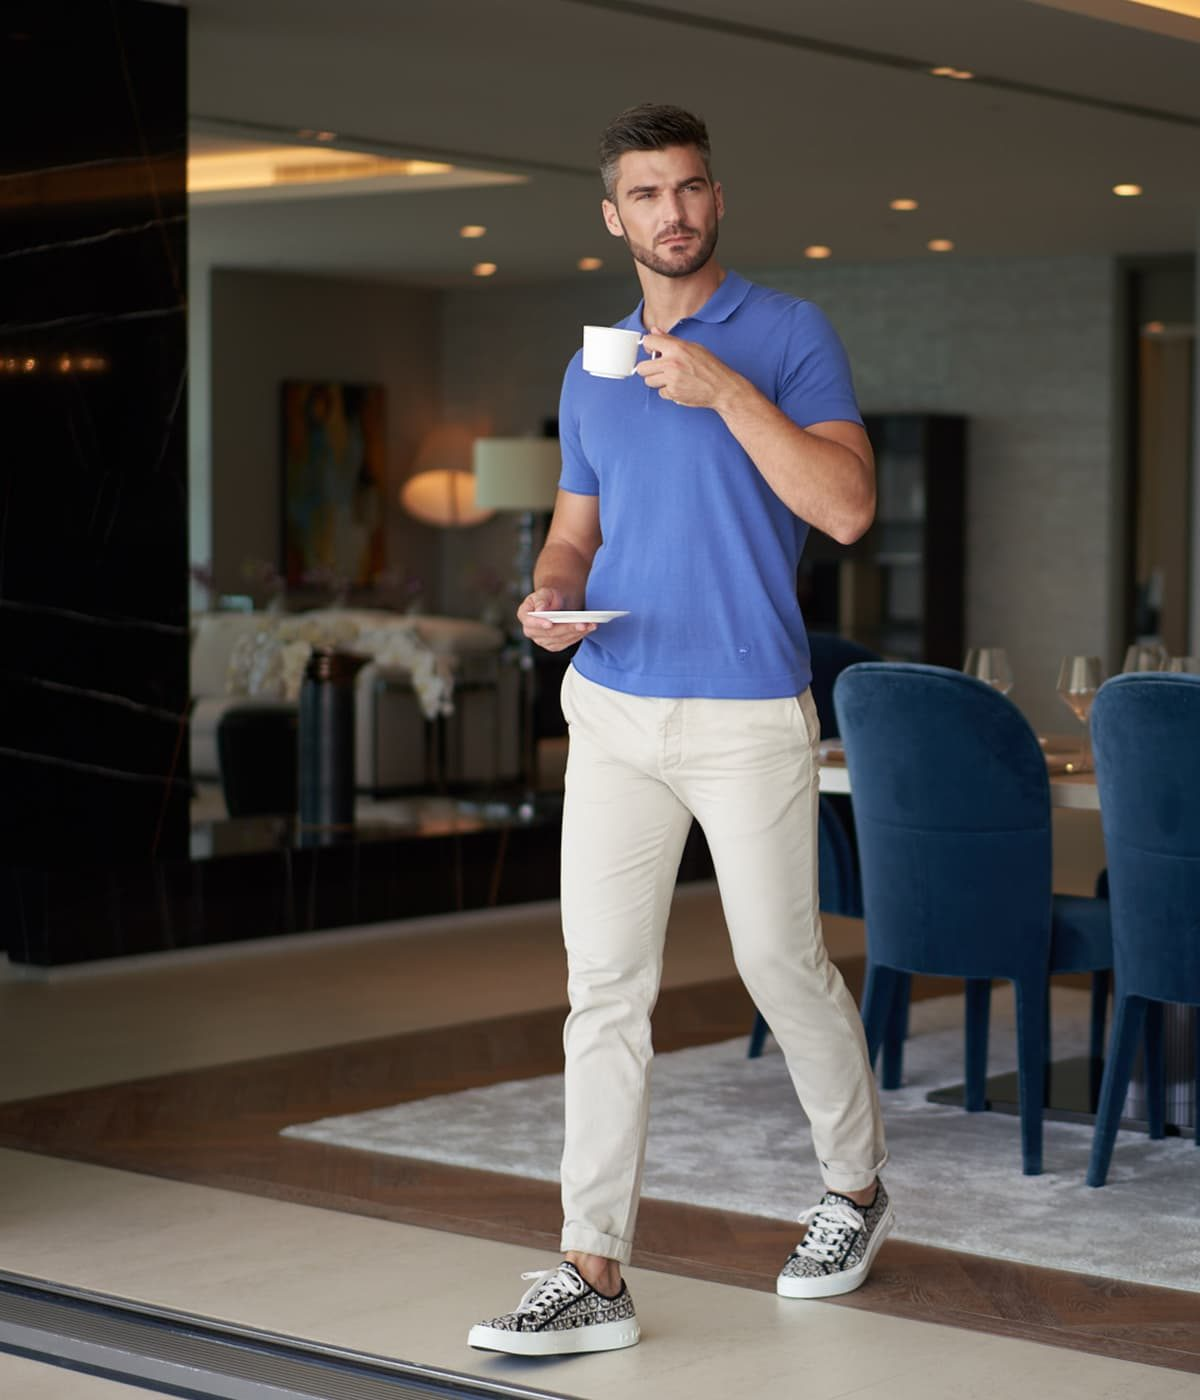 A man in a blue shirt drinks a coffee while walking